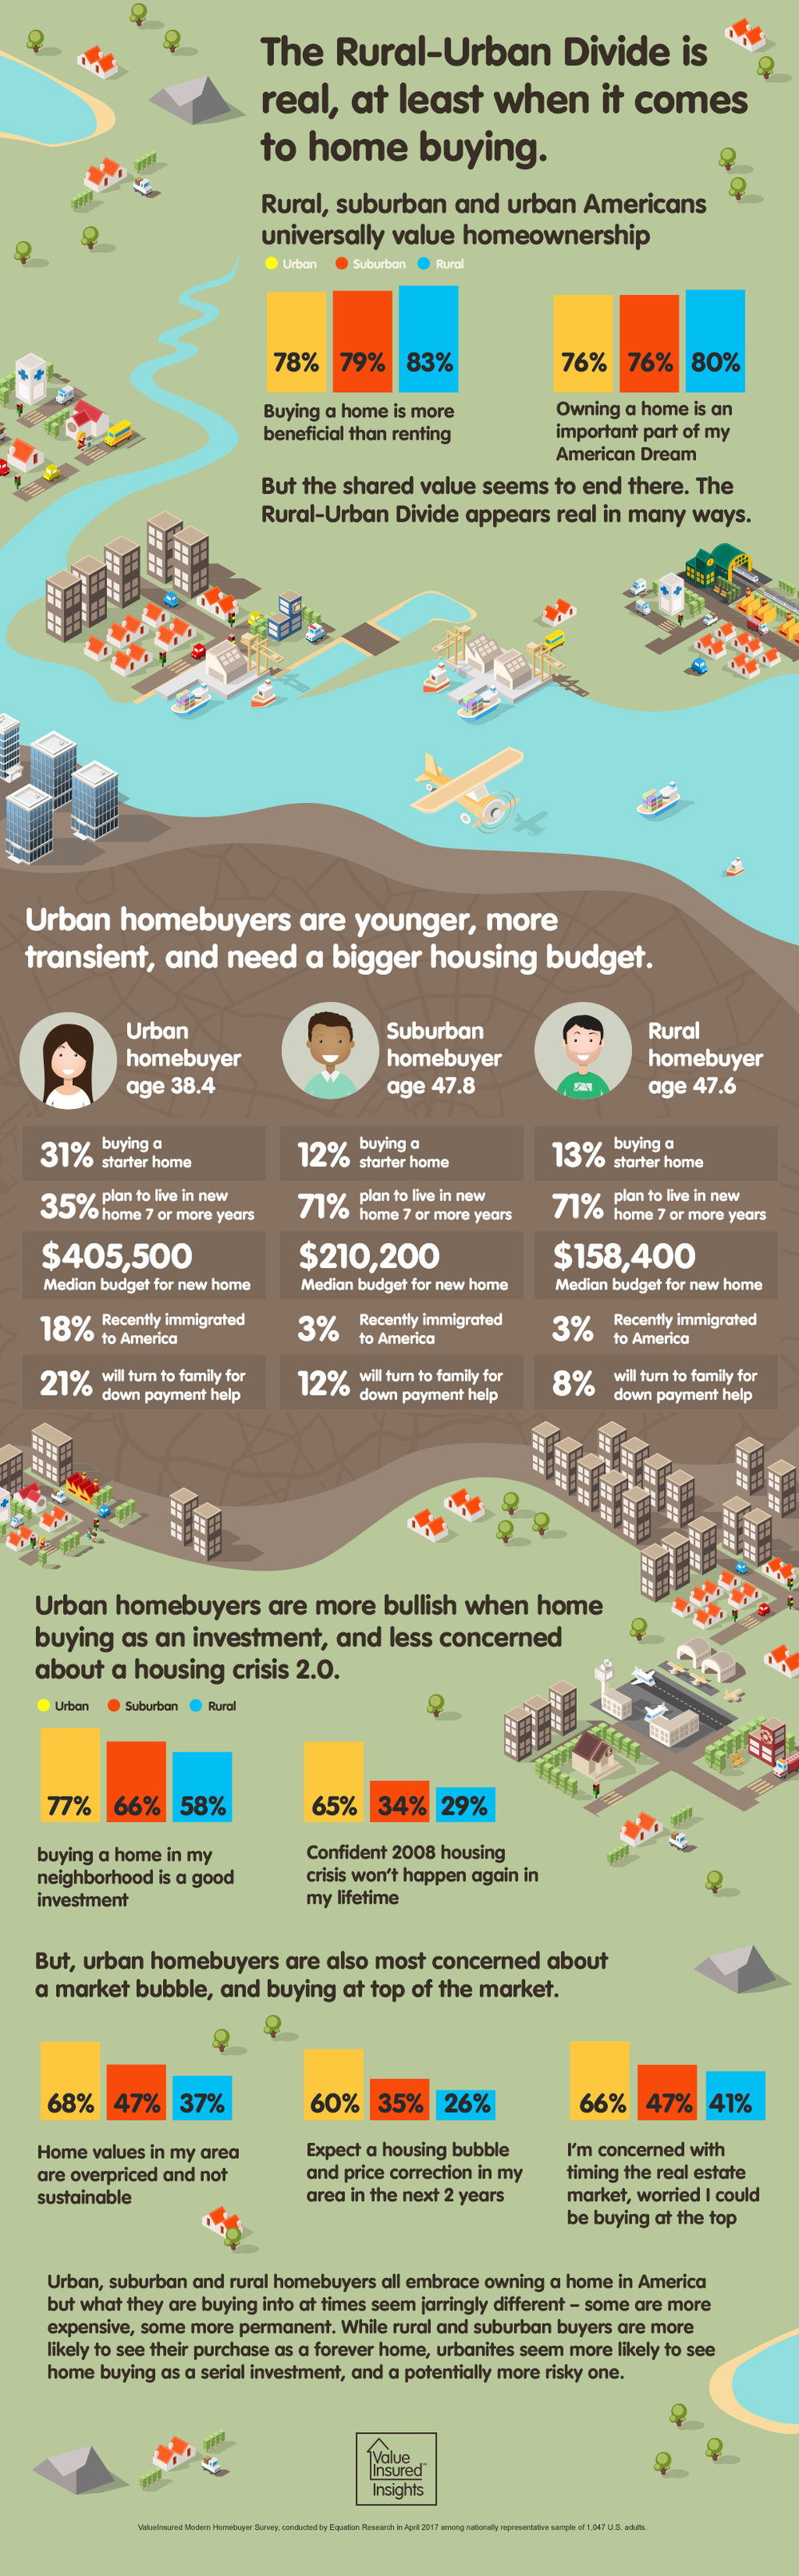 Rural-Urban Divide Infographic